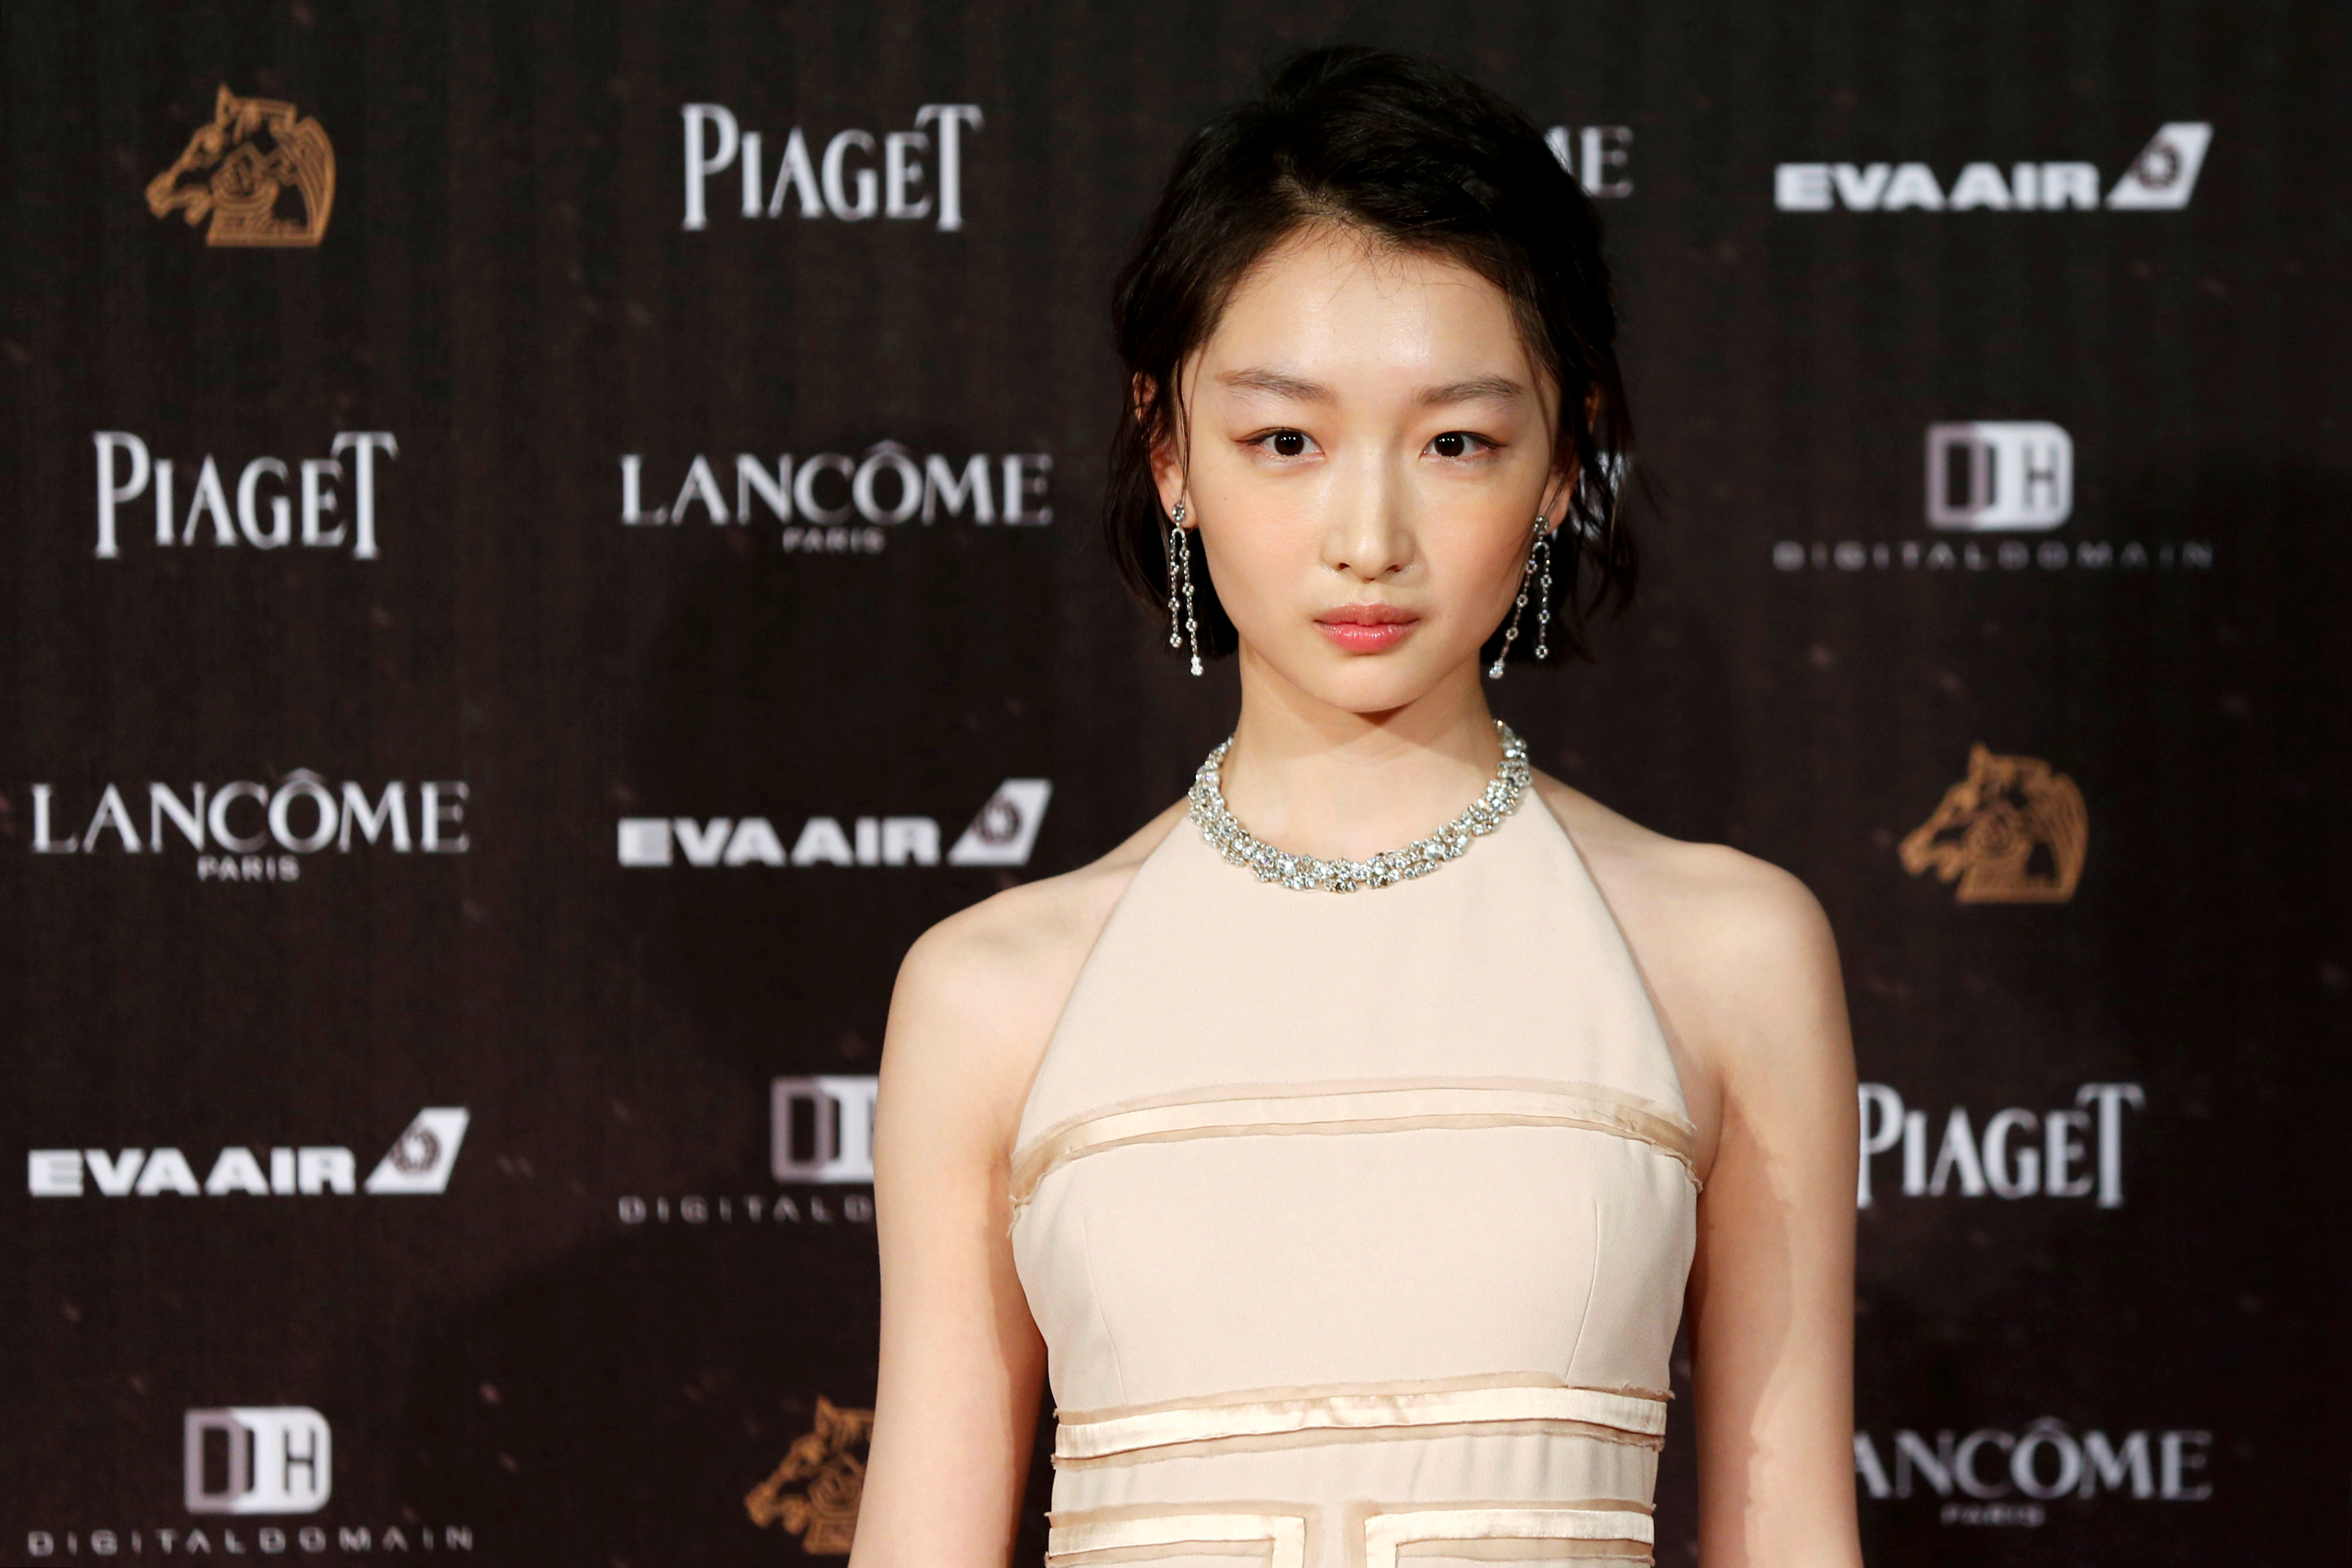 Actor Zhou Dongyu poses on the red carpet at the 53rd Golden Horse Awards in Taipei, Taiwan November 26, 2016. REUTERS/Tyrone Siu/File Photo